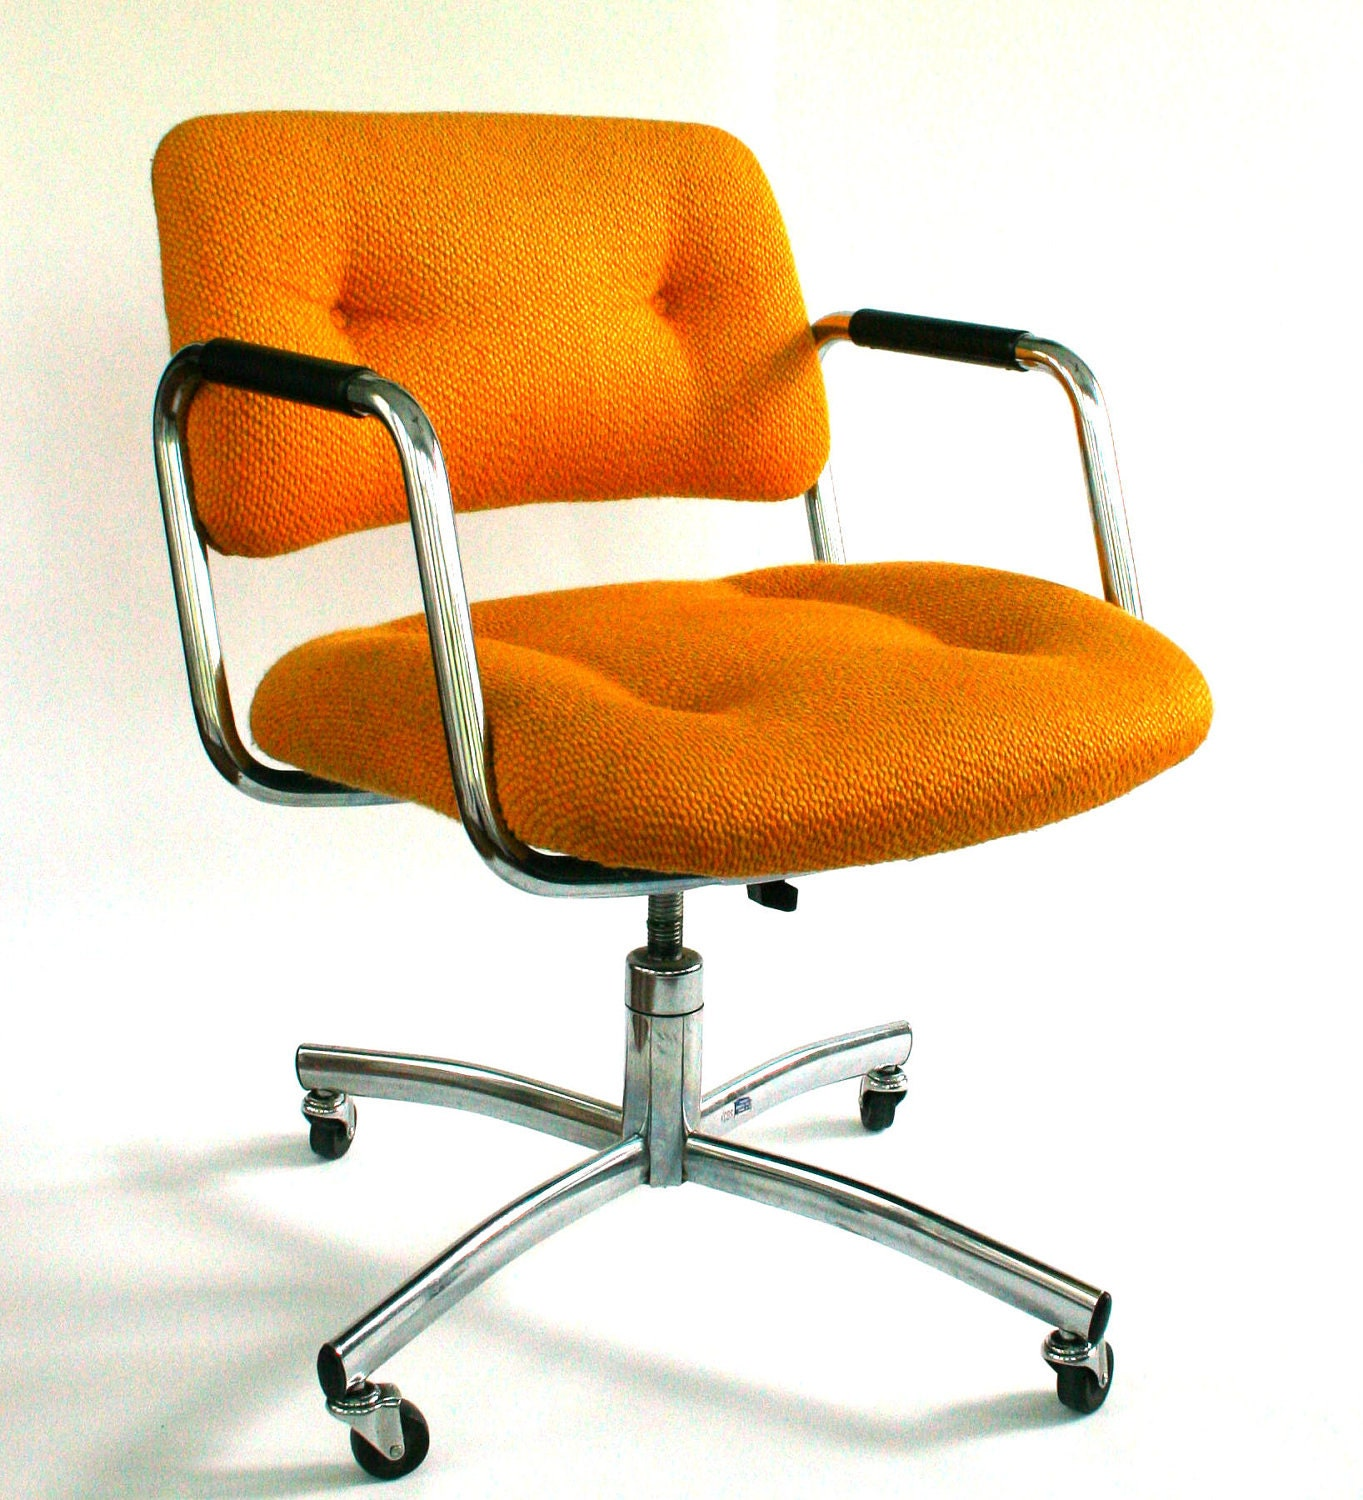 Vintage Office Desk Chair. MidCentury. by RhapsodyAttic on Etsy